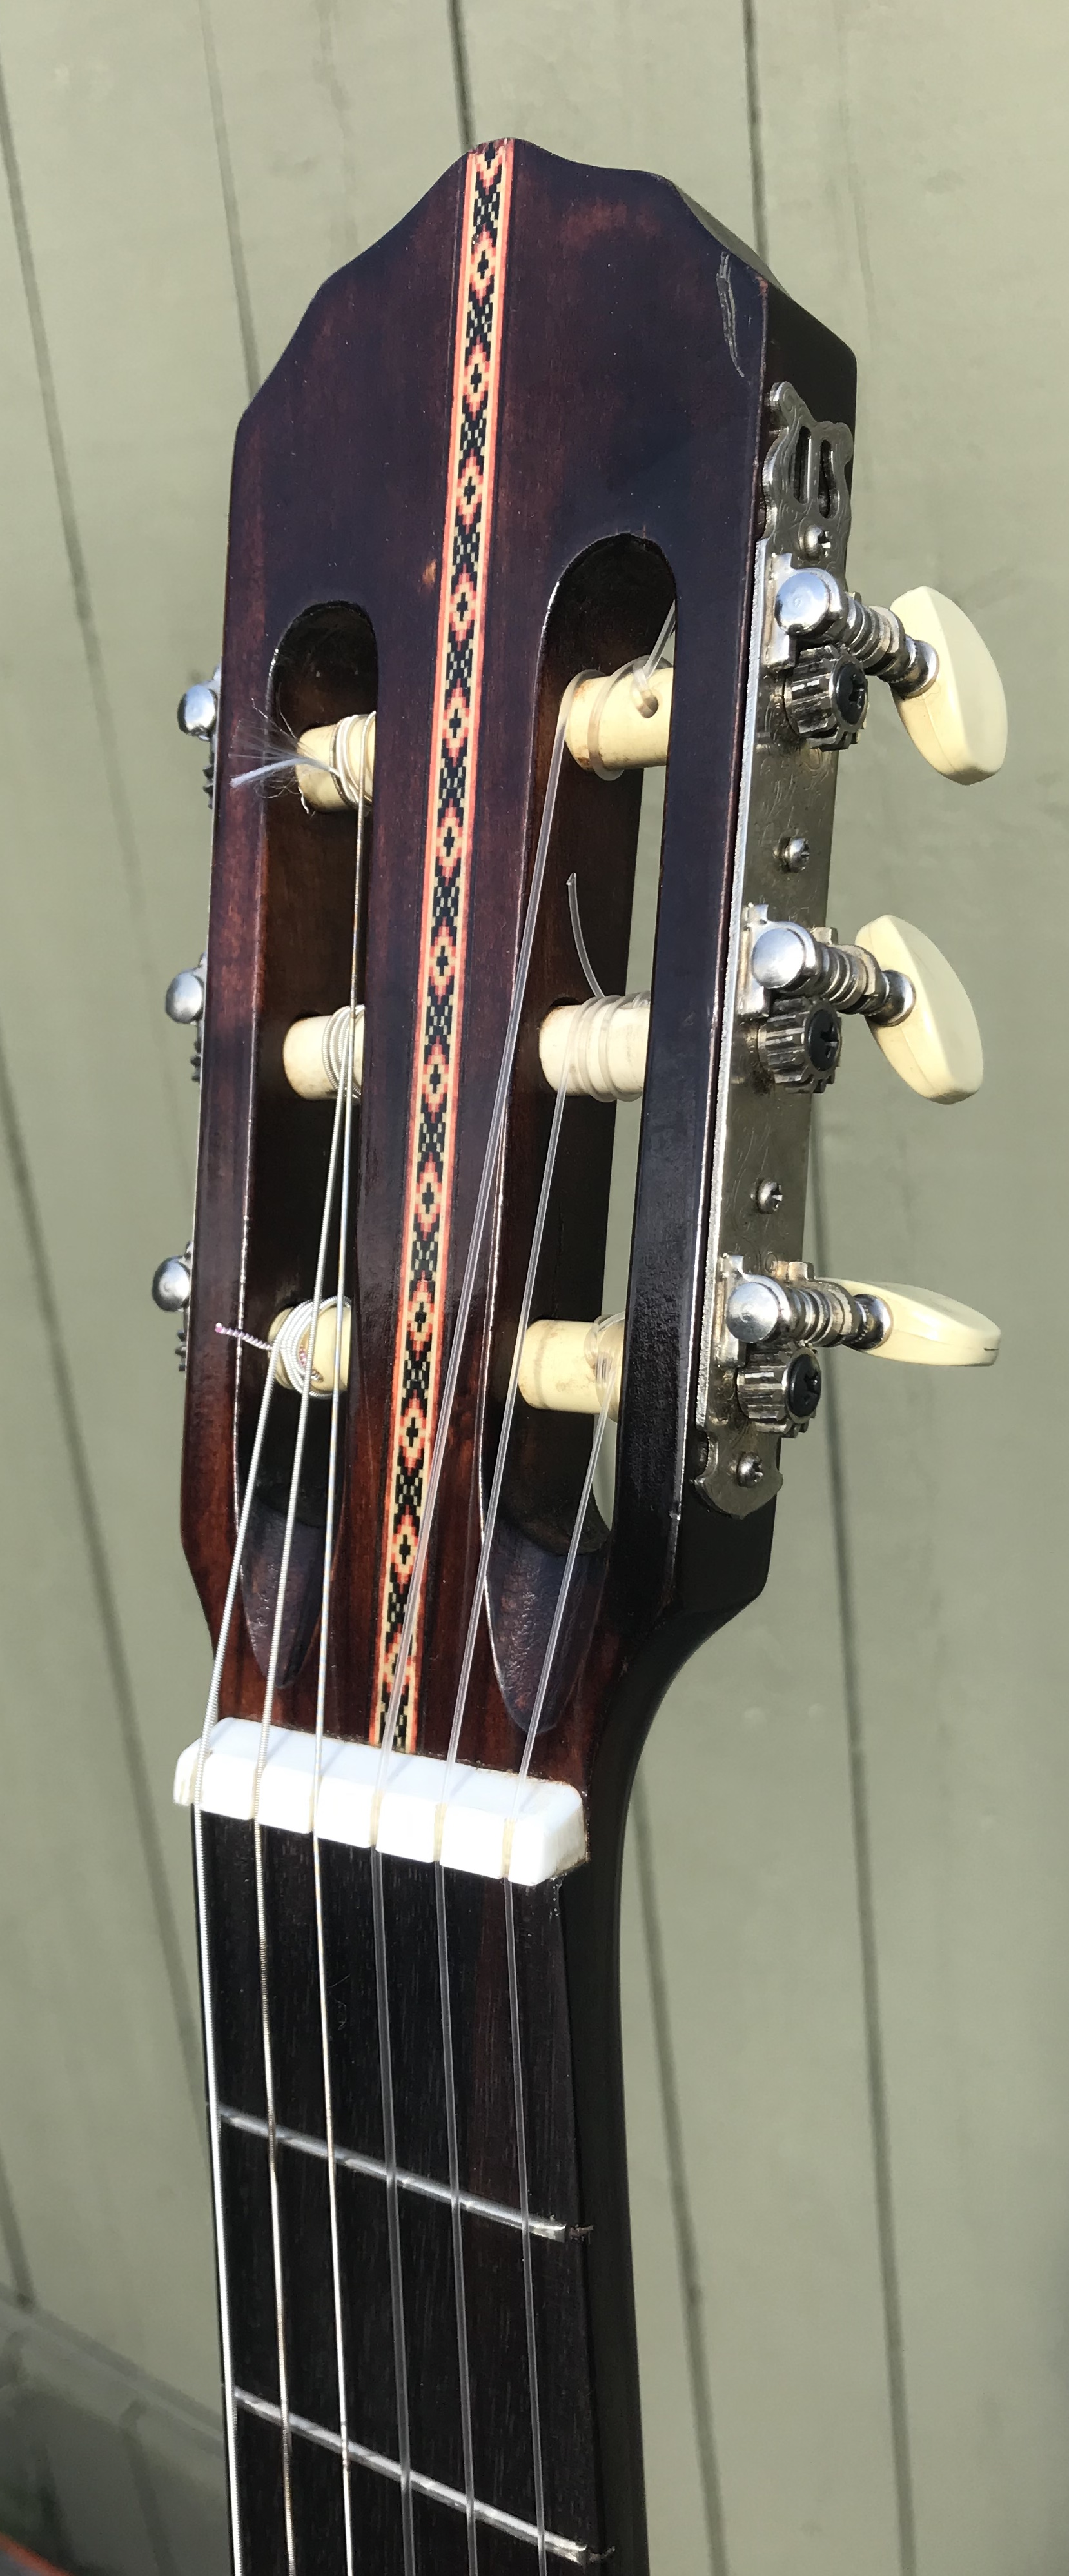 1970 Ensenada frets